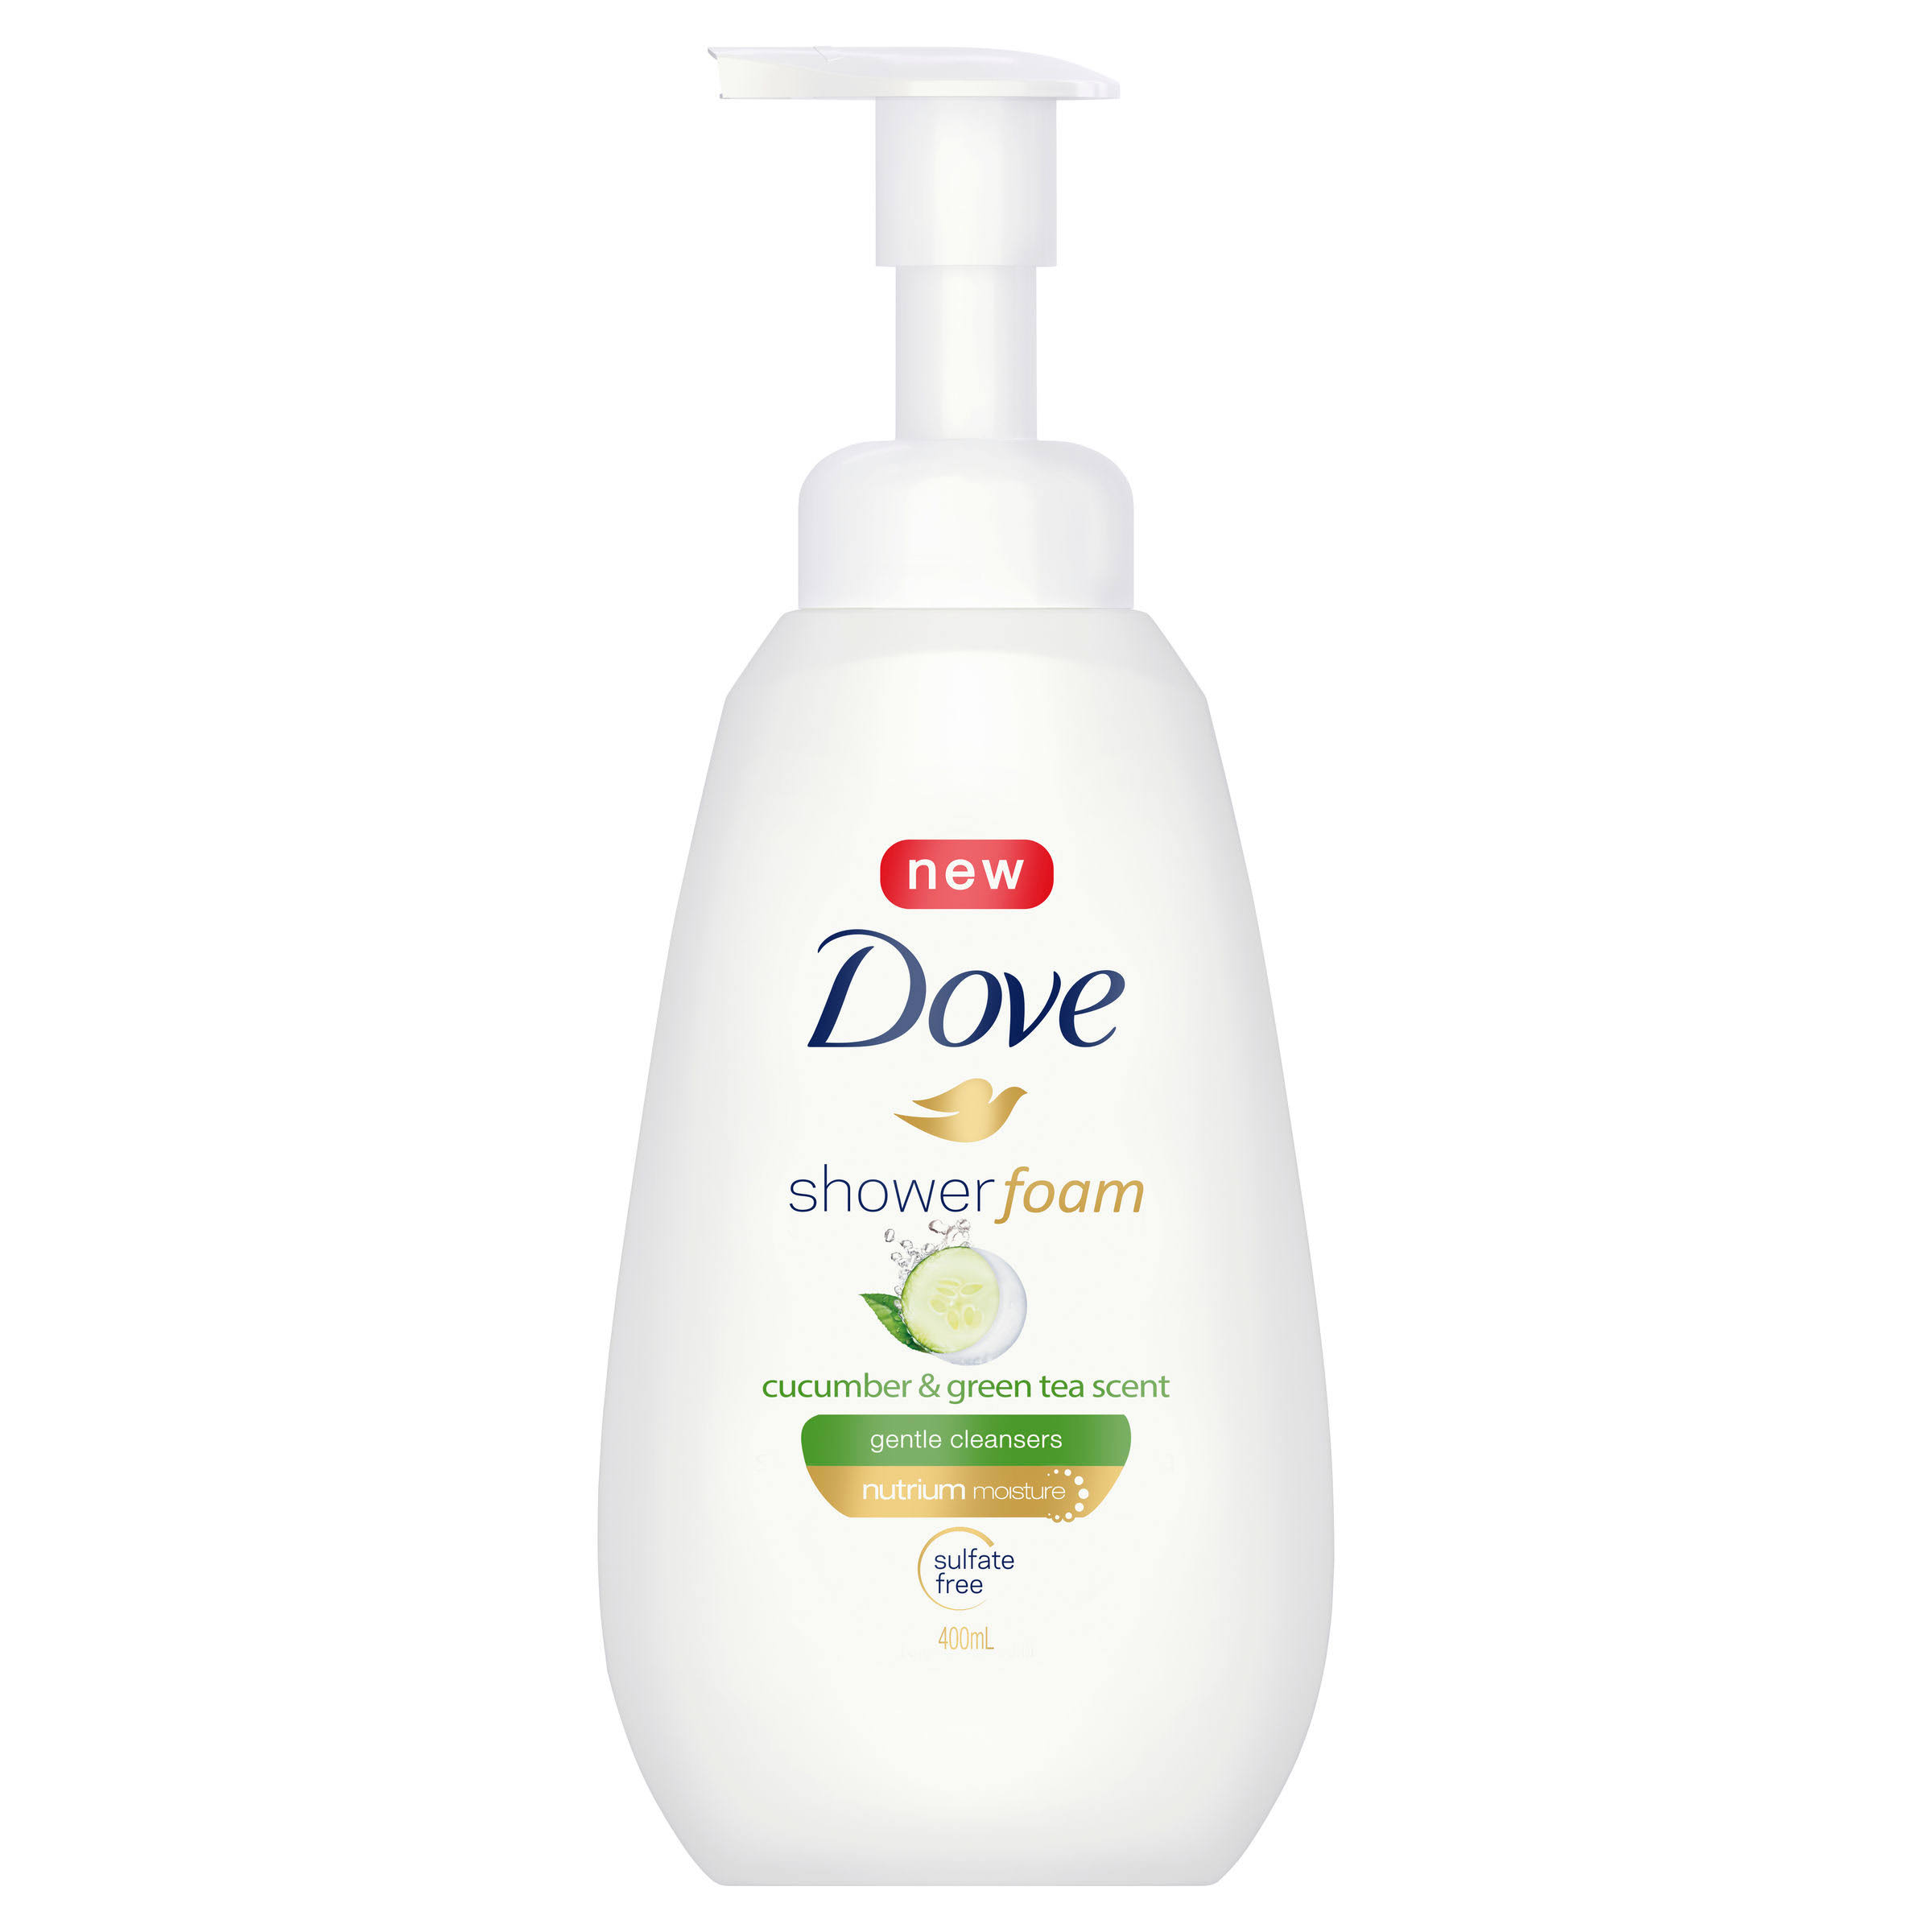 Dove Cucumber and Green Tea Scent Shower Foam - 13.5oz